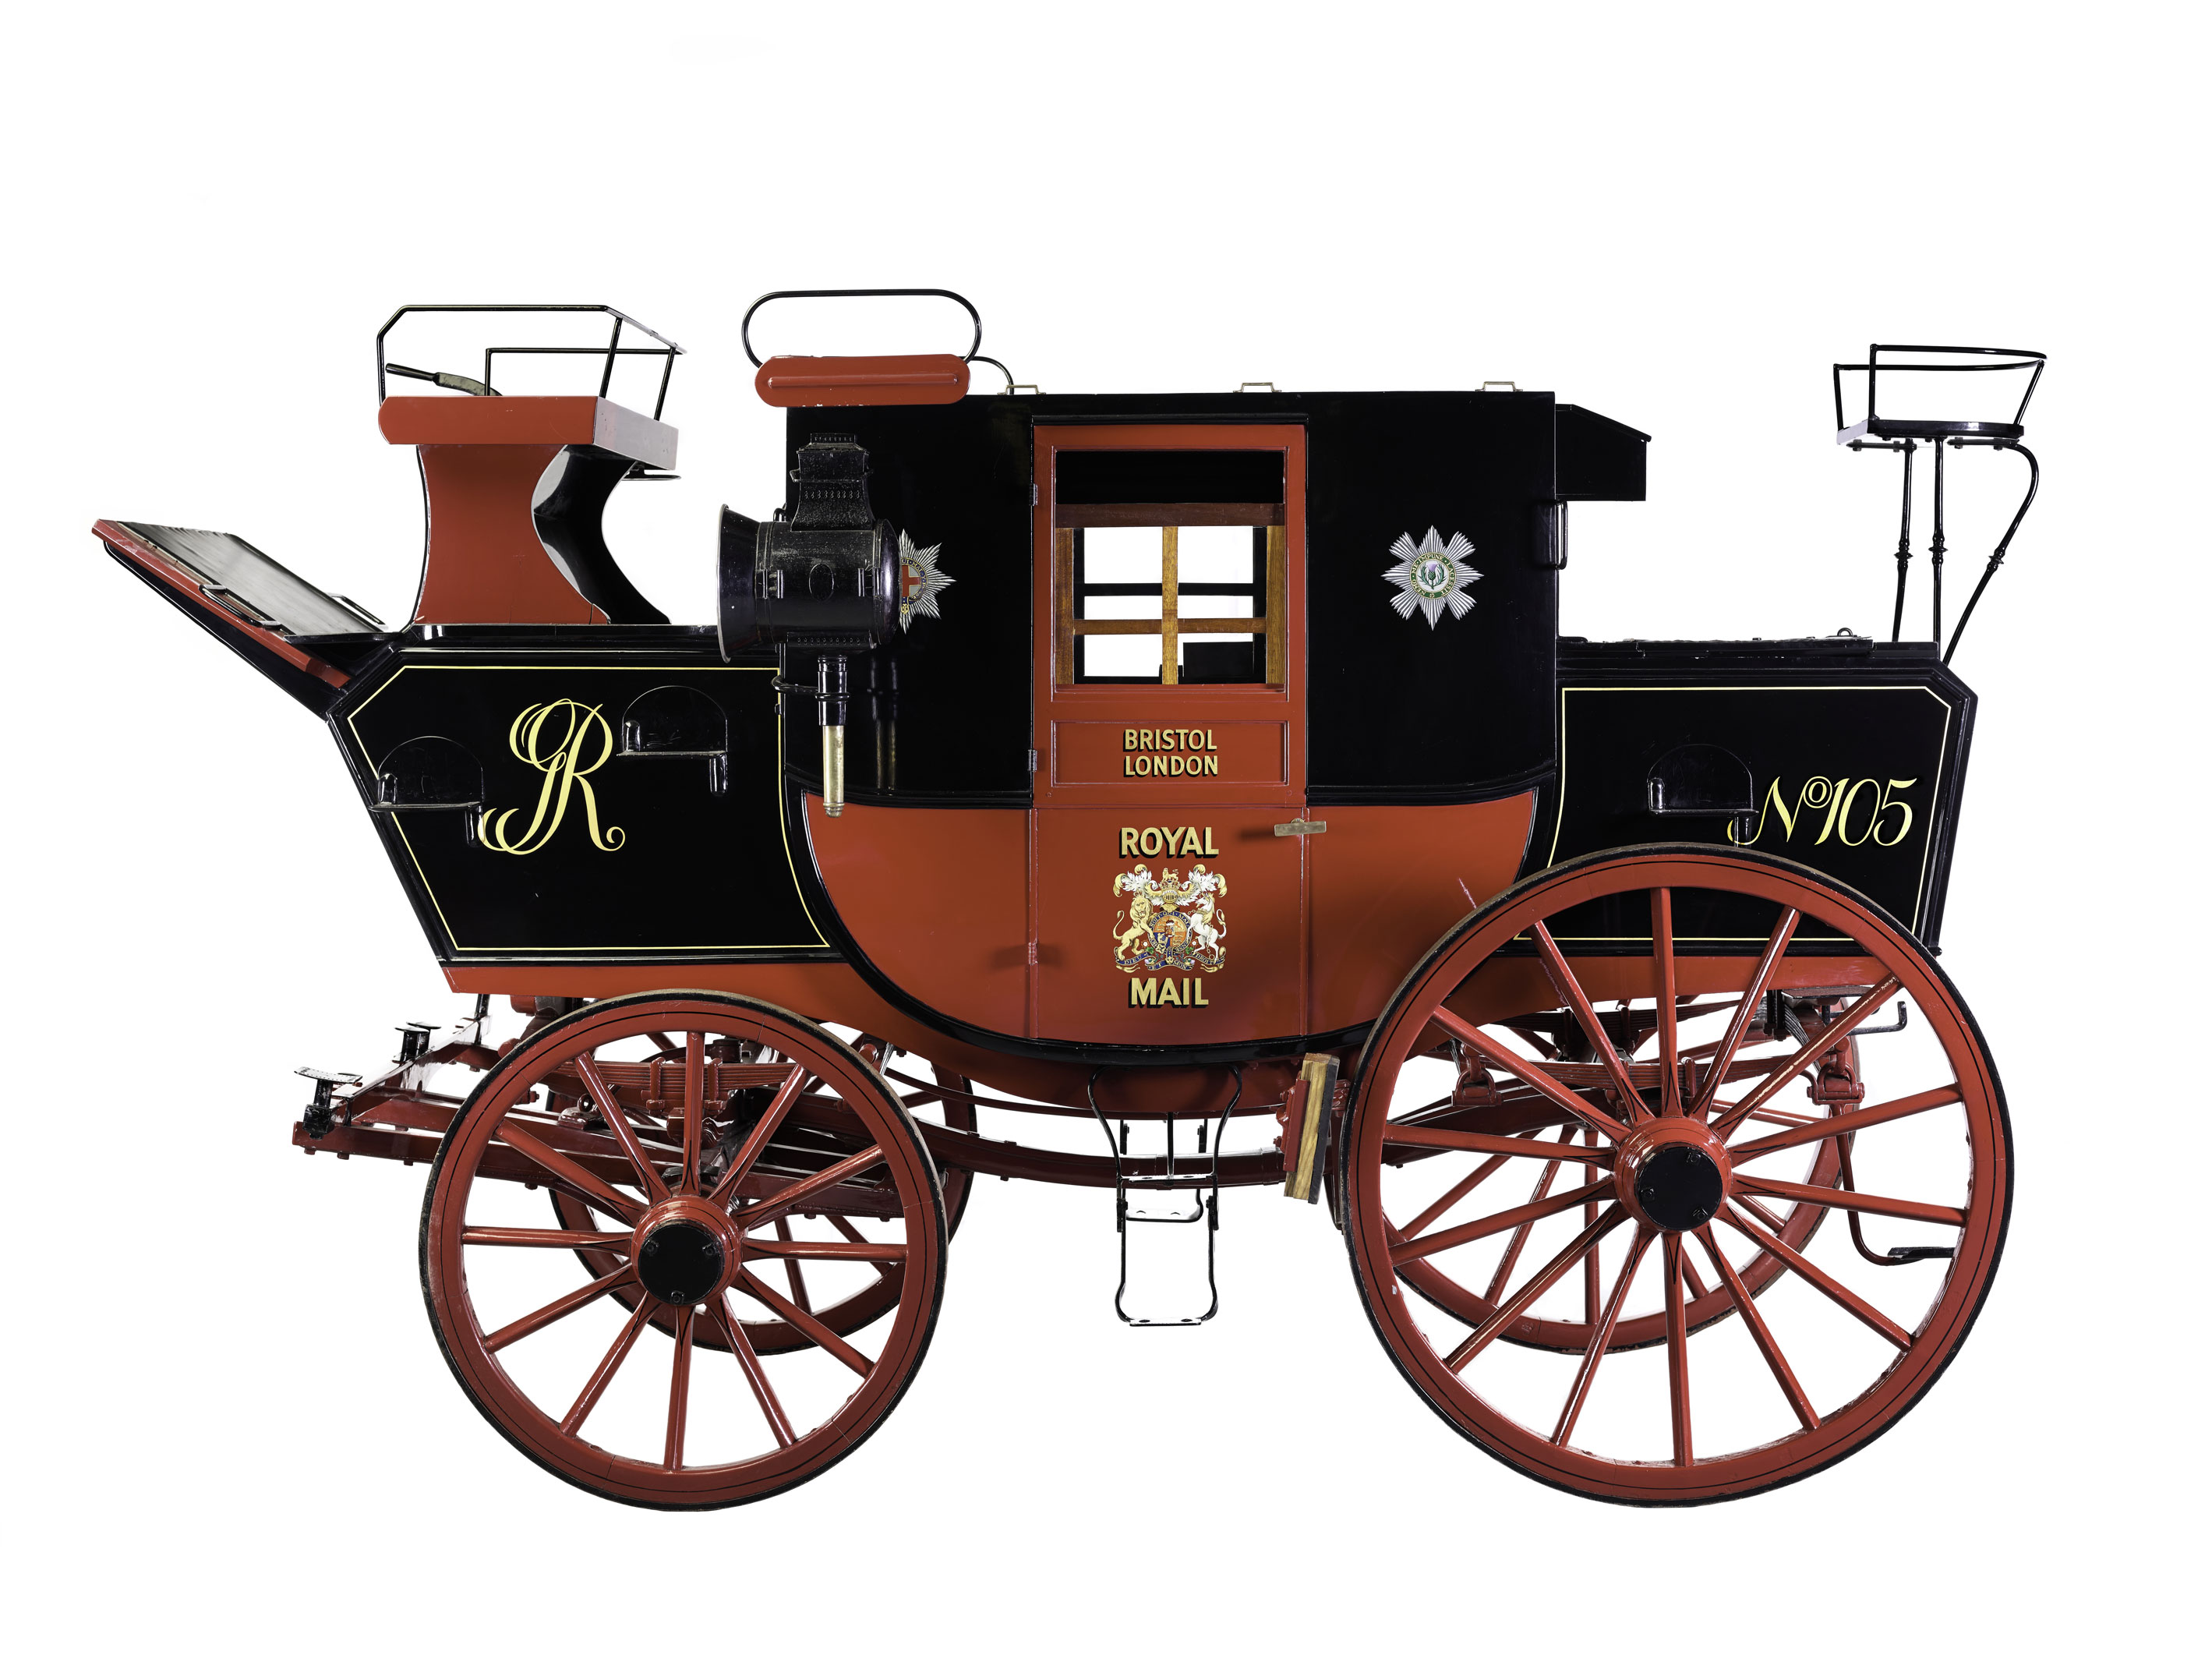 Photograph of the Royal Mail mail coach from c.1800 in red and black.